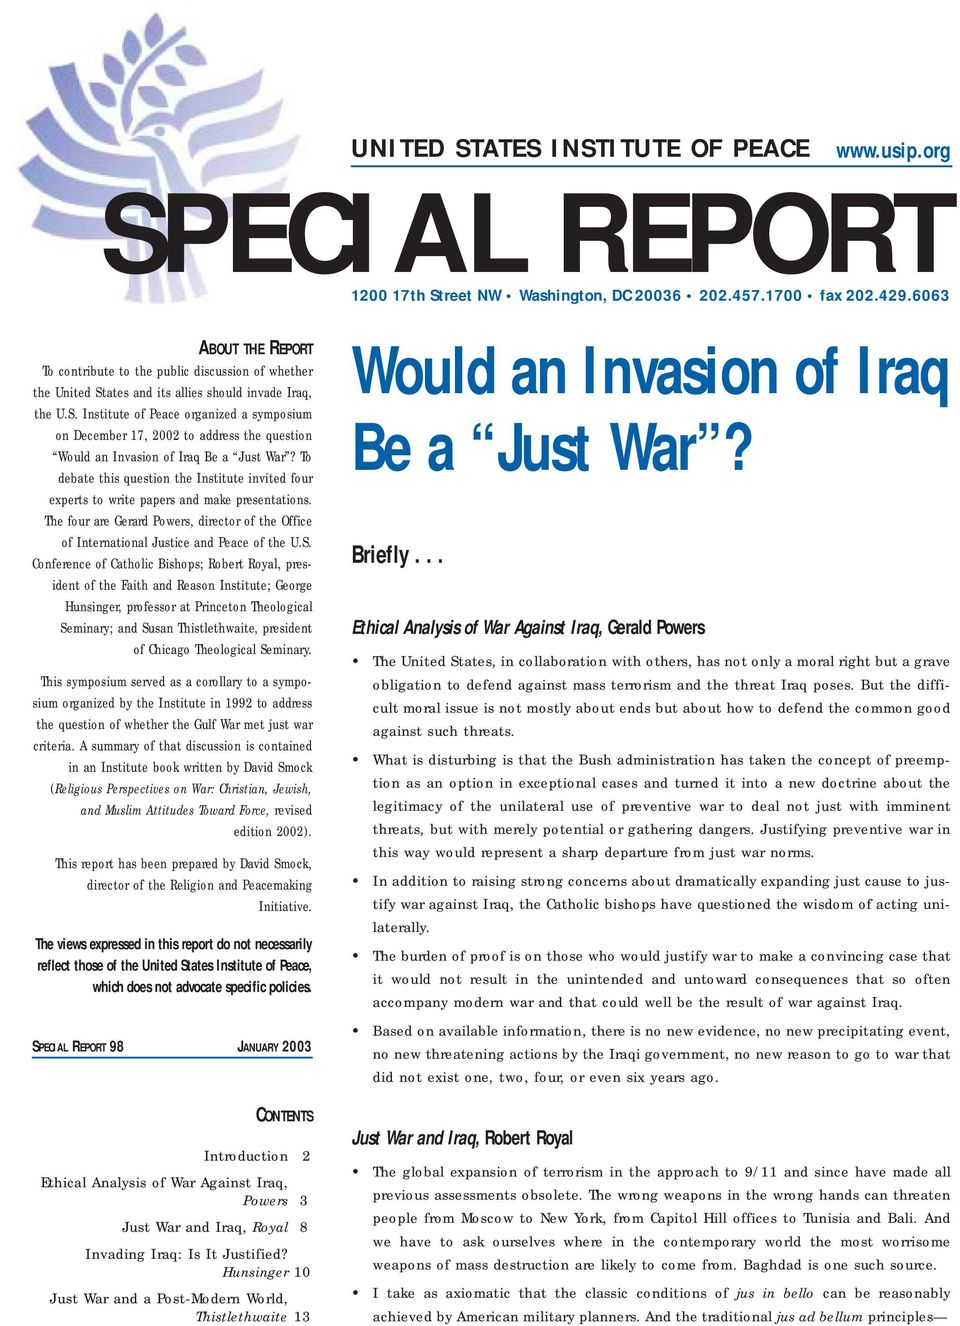 ates and its allies should invade Iraq, the U.S. Institute of Peace organized a symposium on December 17, 2002 to address the question Would an Invasion of Iraq Be a Just War?